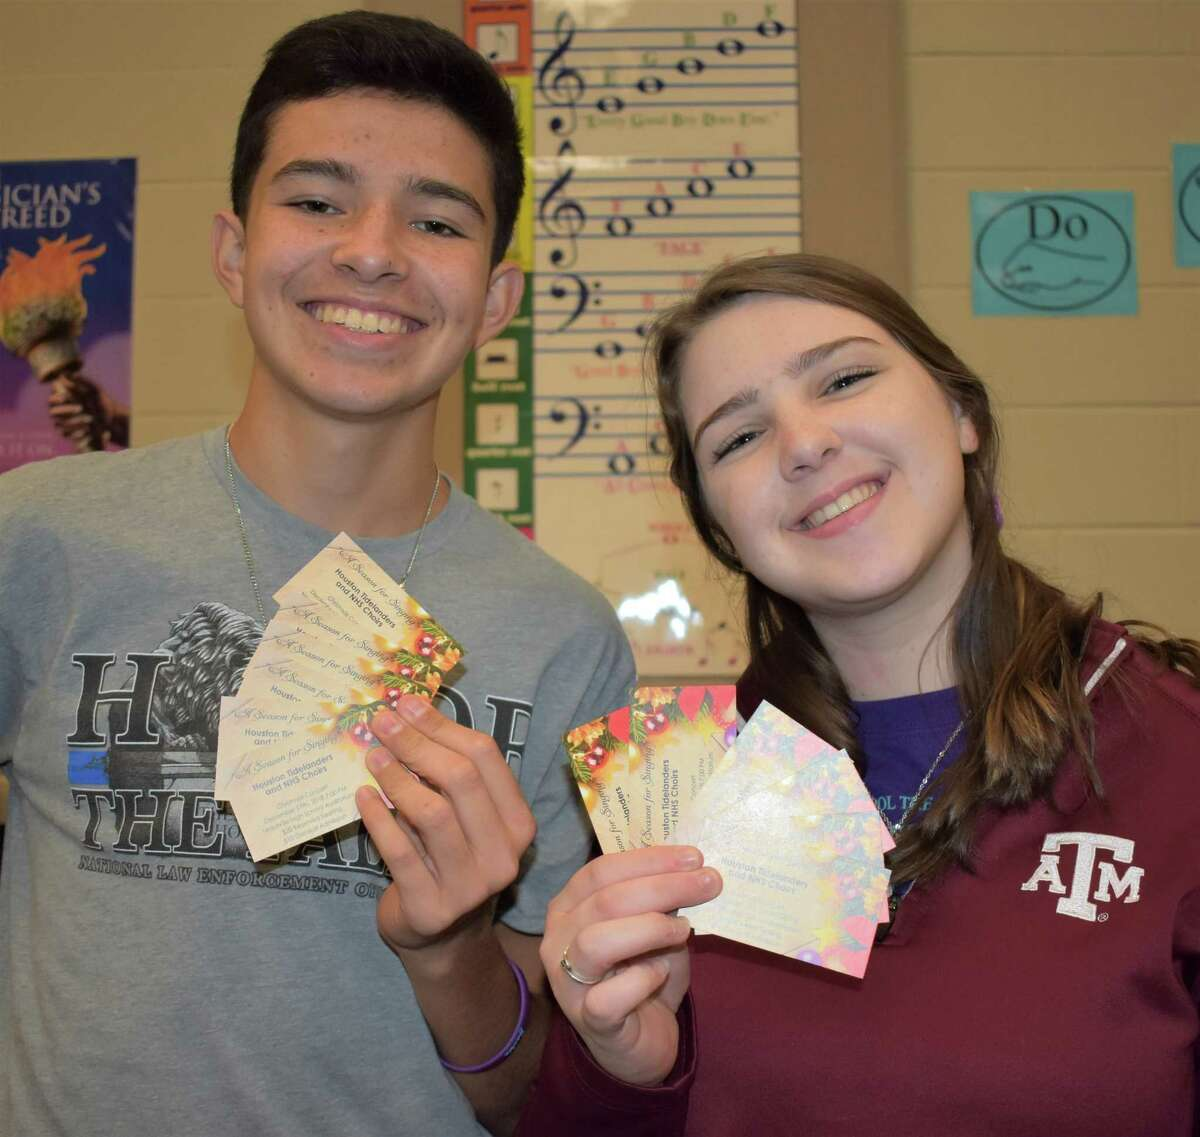 Needville High School seniors and Varsity Mixed Choir members Christopher Villarreal and Evalynn Tween want to remind folks that tickets are still available for the annual Christmas concert with the Houston Tidelanders Barbershop Chorus.